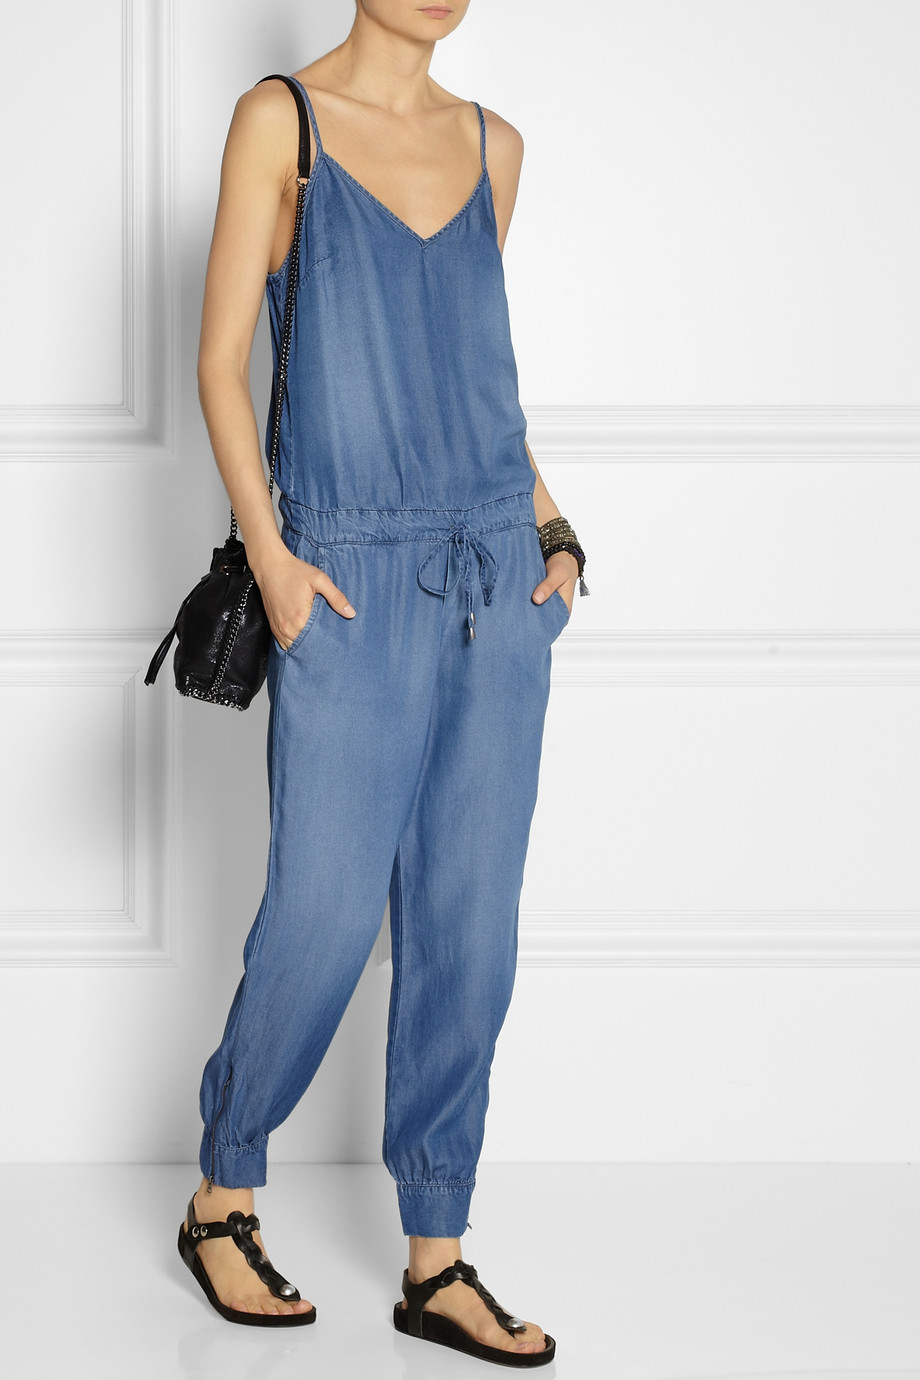 c0cf7fe1d93 Lyst - Splendid Washed Chambray Jumpsuit in Blue